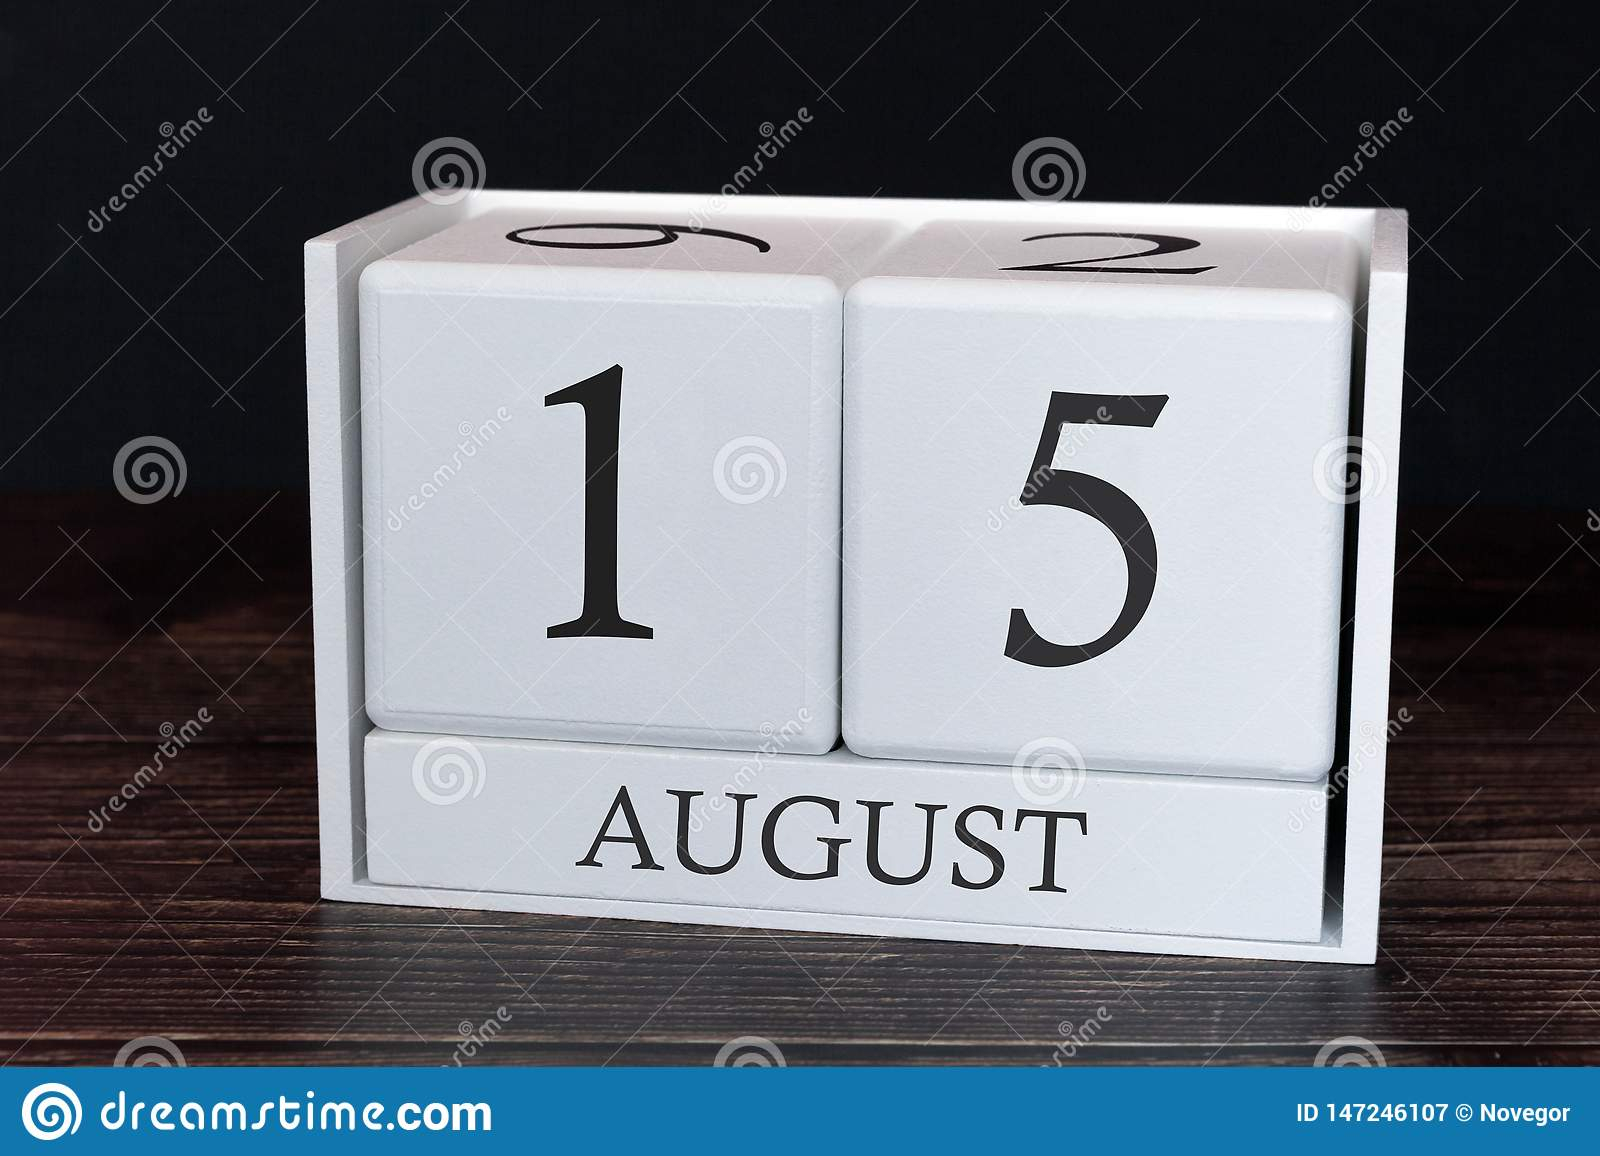 Business Calendar For August, 15Th Day Of The Month. Planner for 5 Day Monthly Calendar